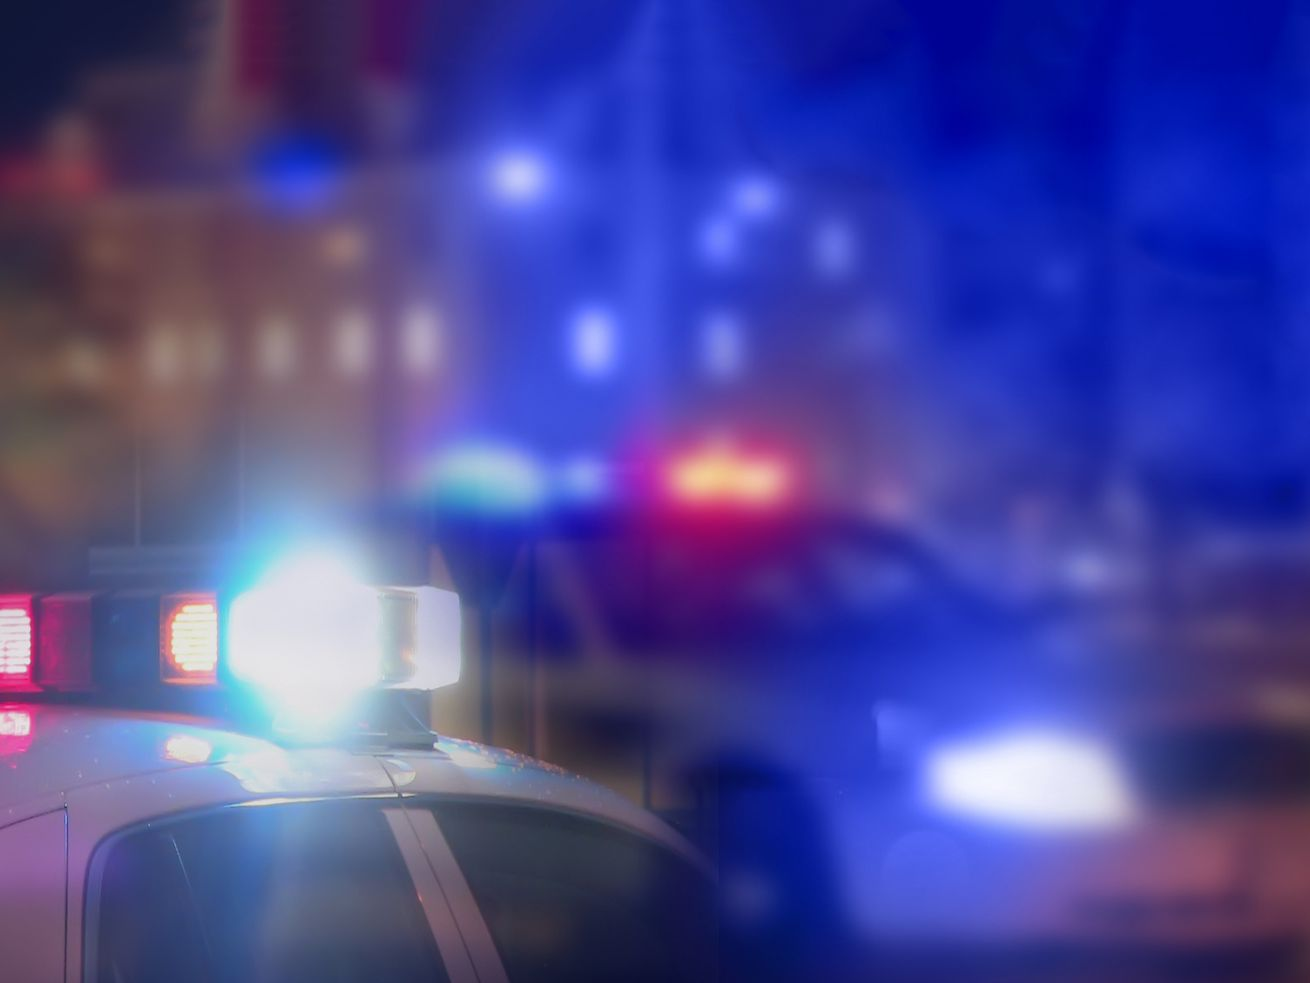 One person was killed and three others injured in a crash Jan. 13 in South Deering, police said.